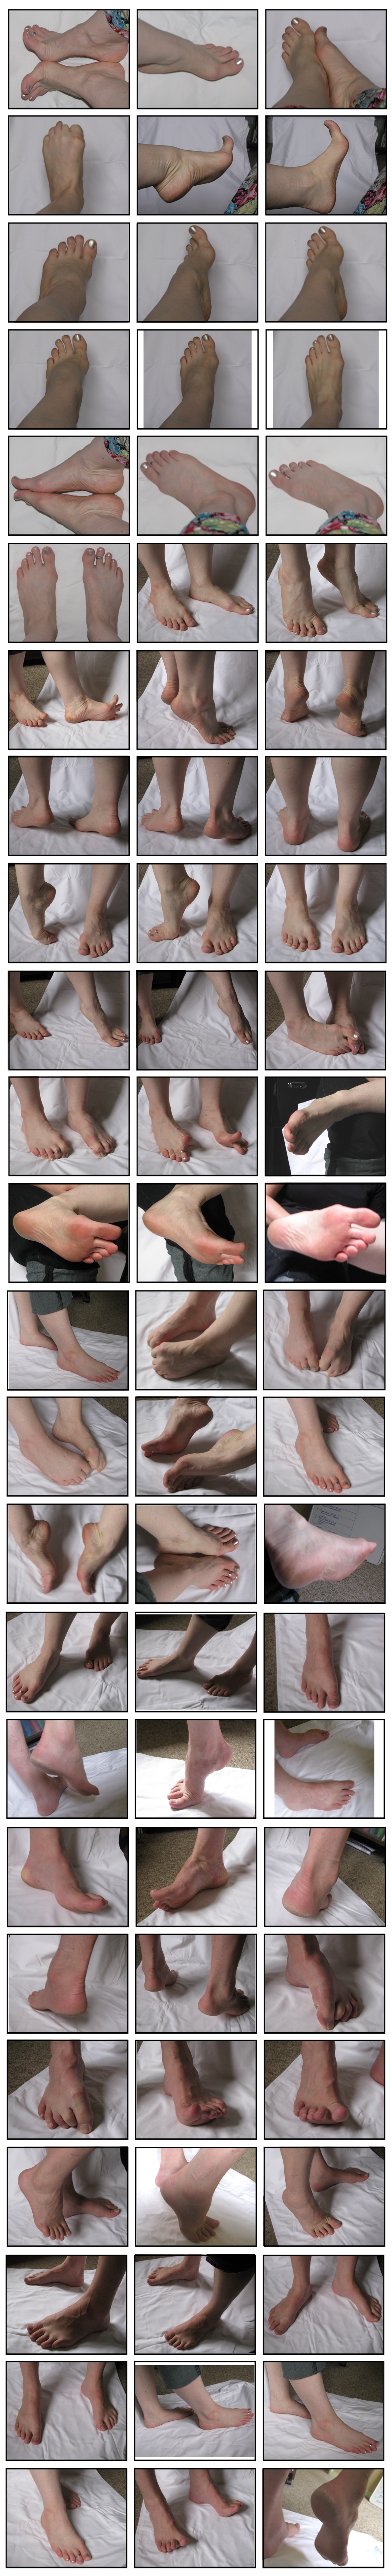 Foot Study Photo Reference by protowilson